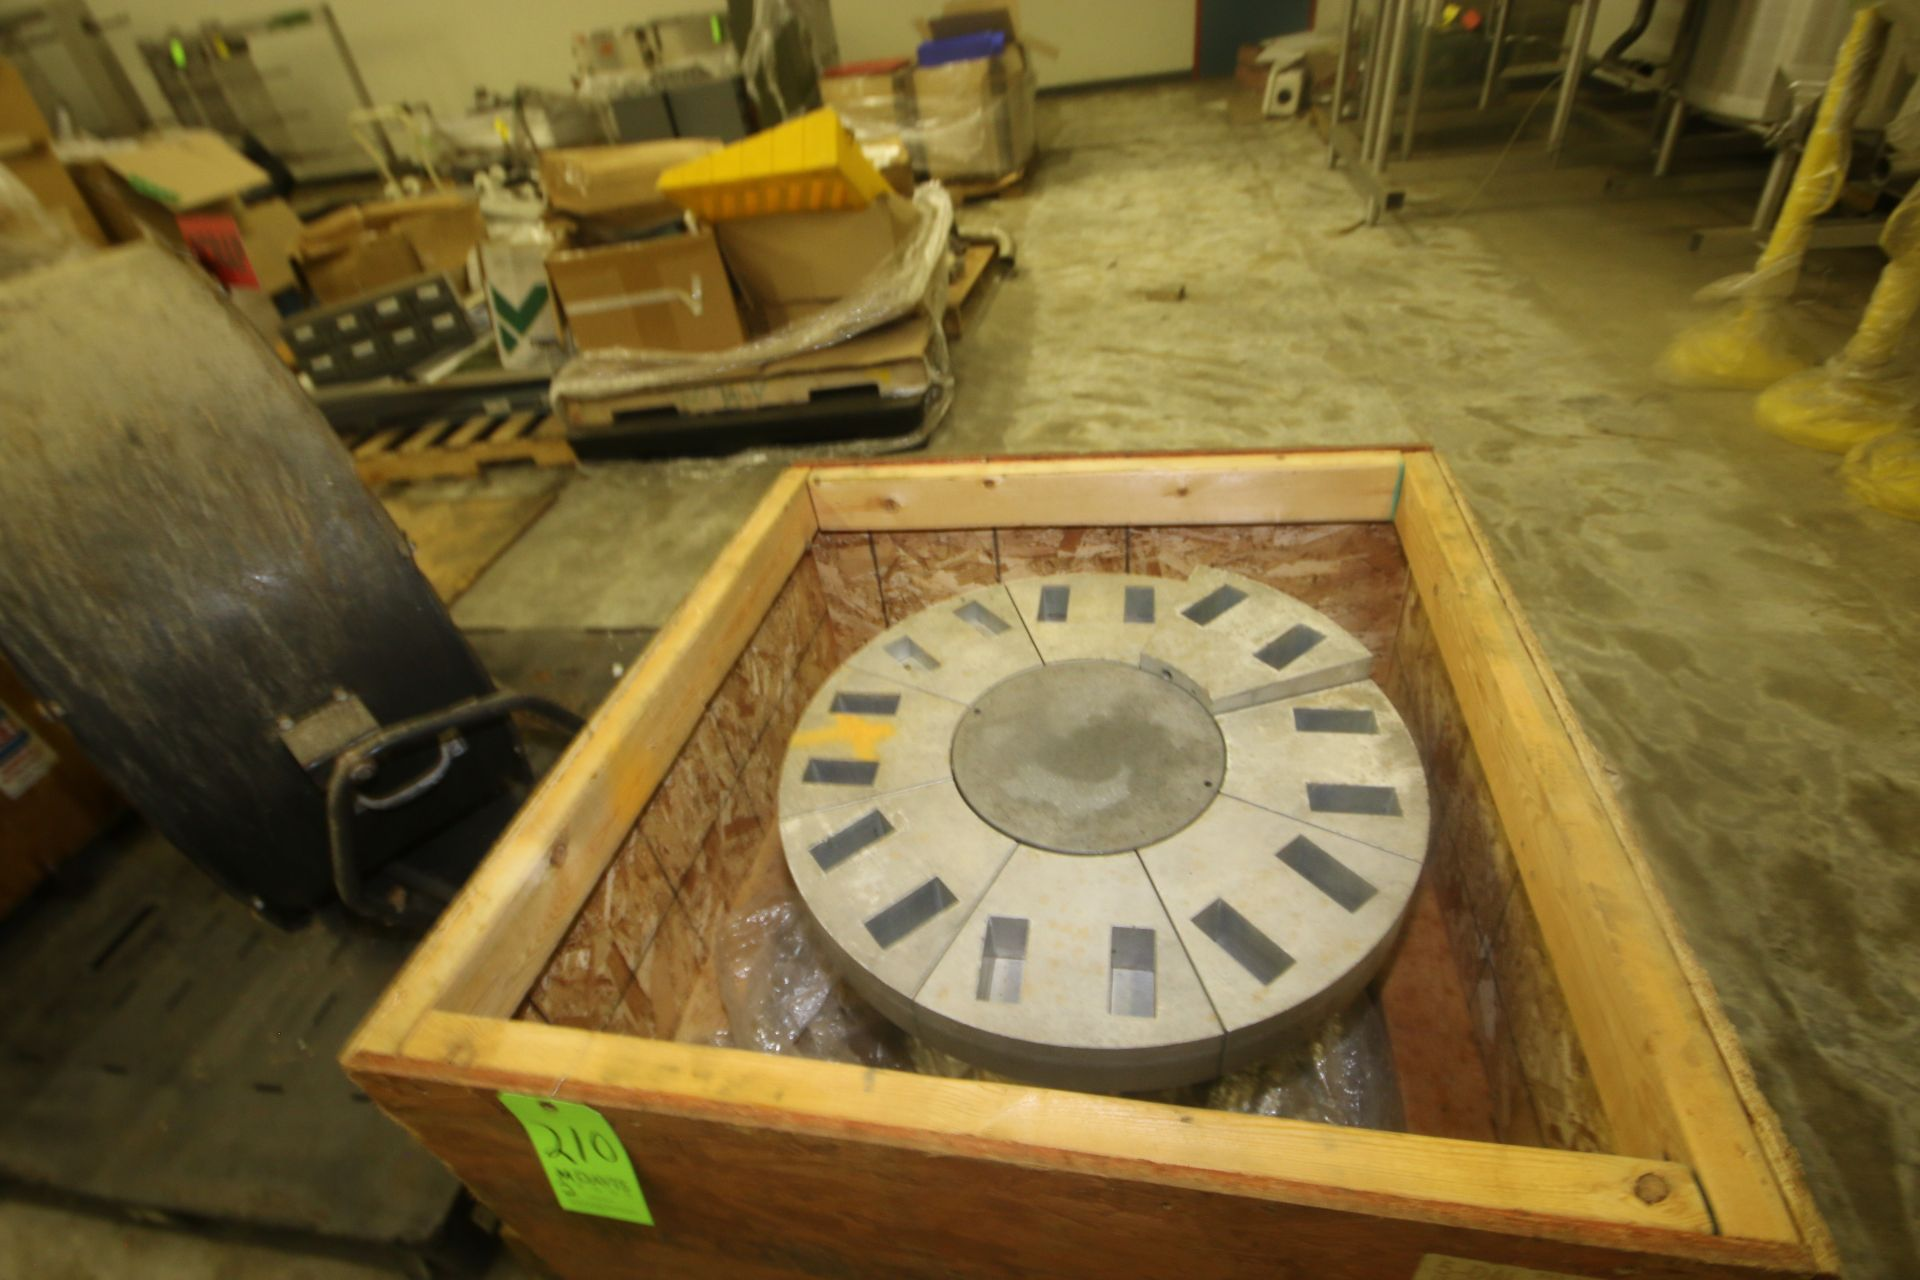 Lot 210 - 16-Mold Head Assembly for Butter Molder, (1) Unit Missing Parts--See Photographs (LOCATED IN